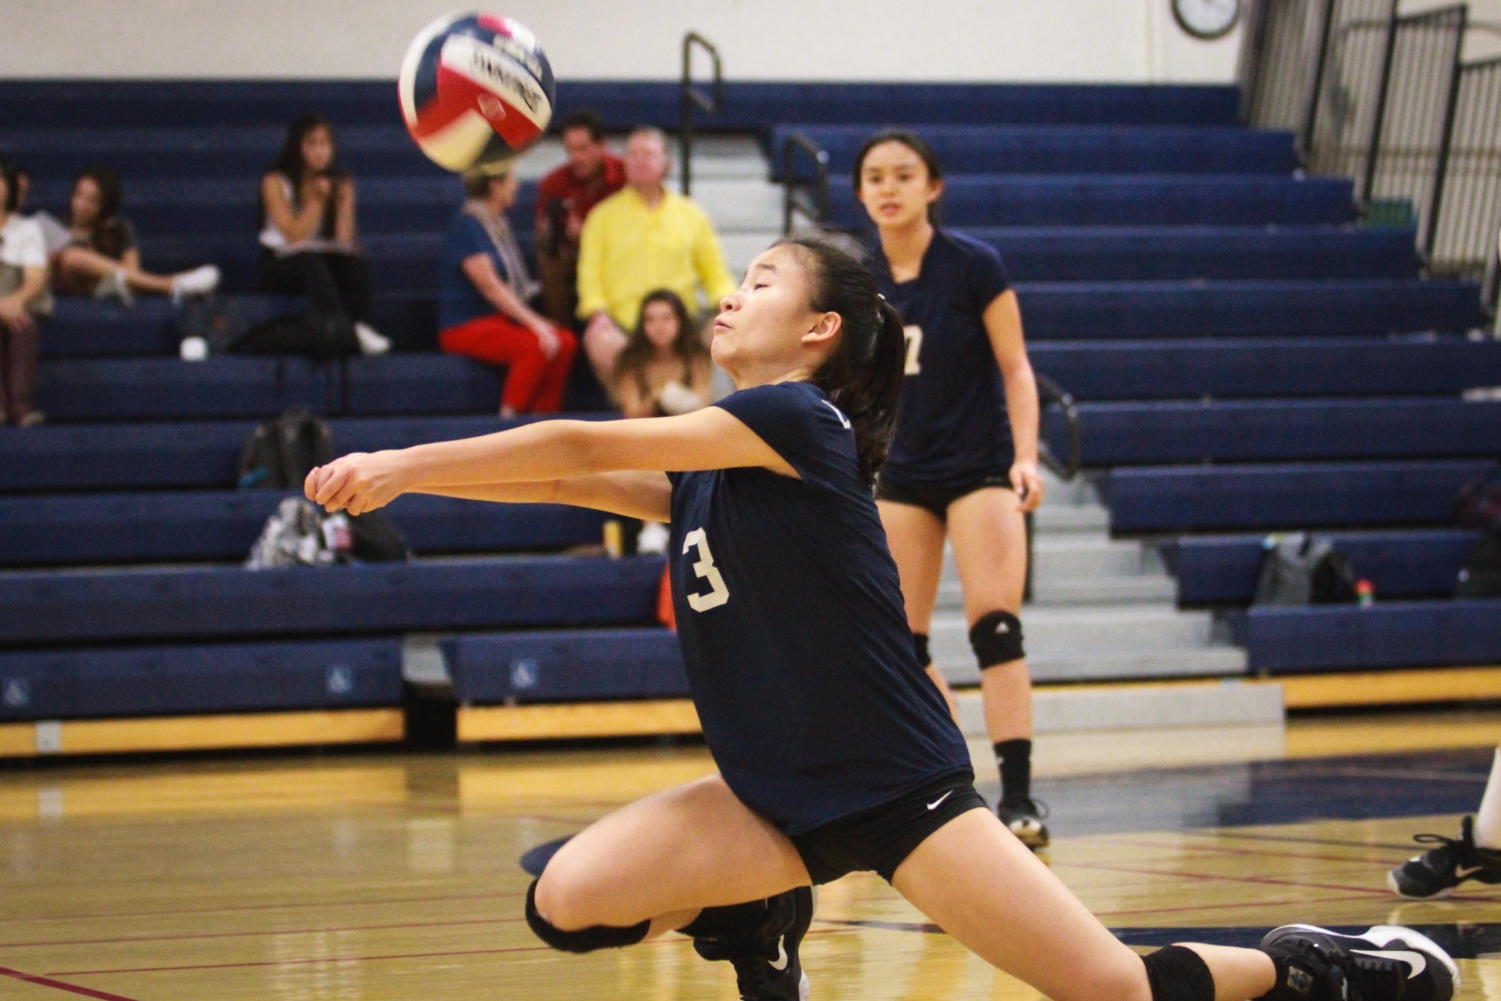 Claire Tseng, a freshman, digs up the ball for her team.